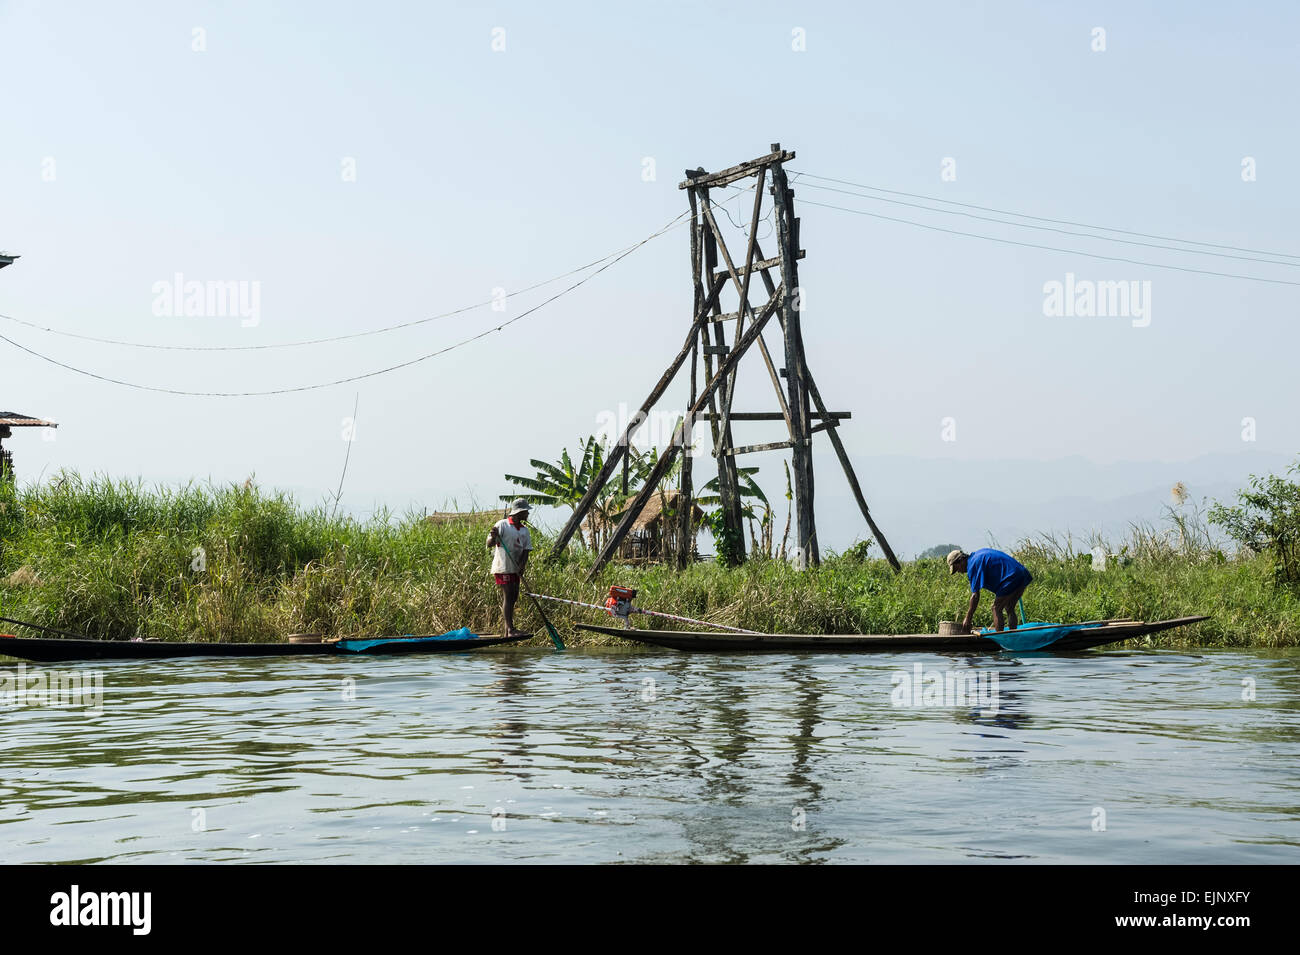 Scenes on Inle Lake, note the electricity pylon - Stock Image